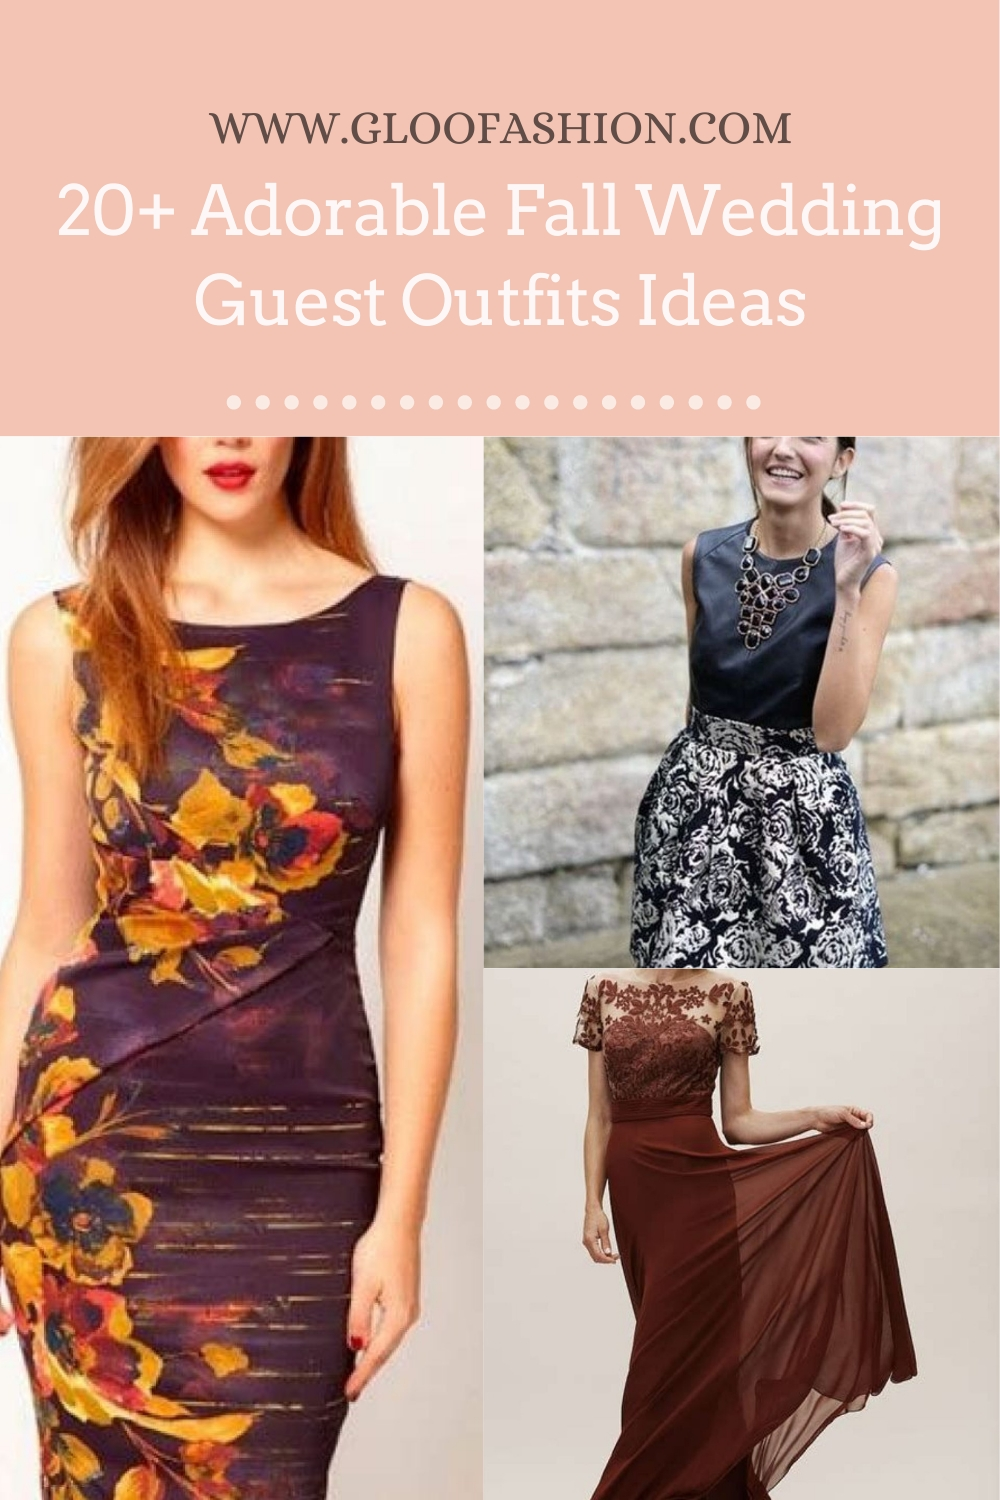 20+ Adorable Fall Wedding Guest Outfits Ideas